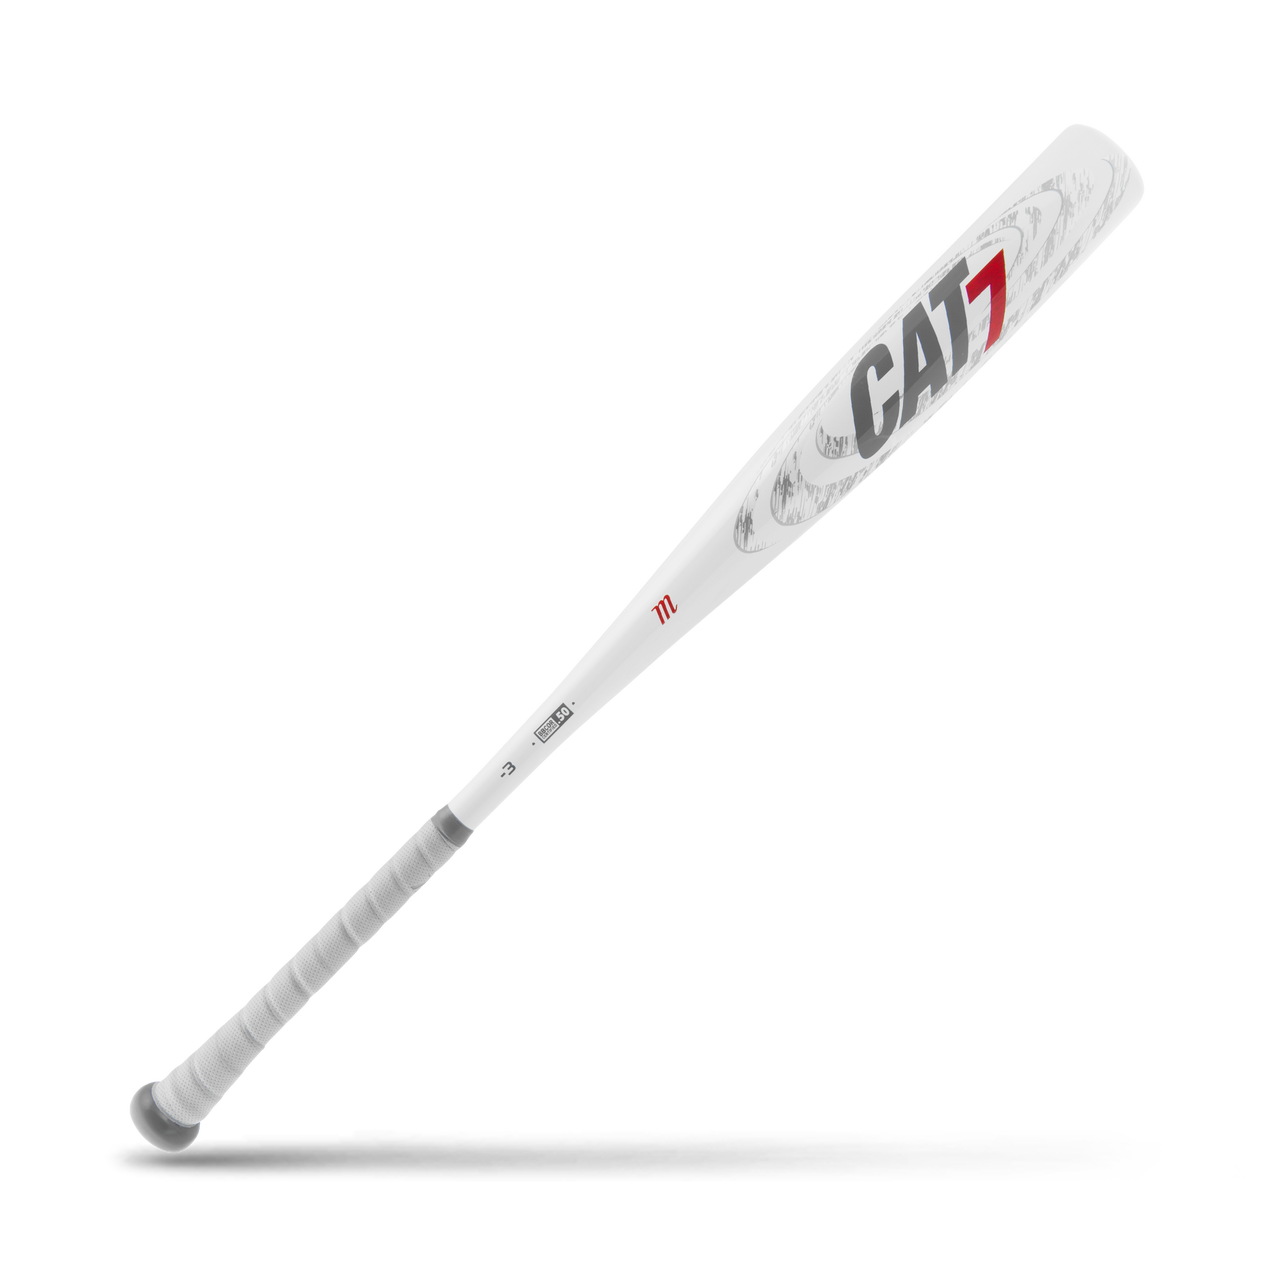 Marucci CAT7 BBCOR Bat